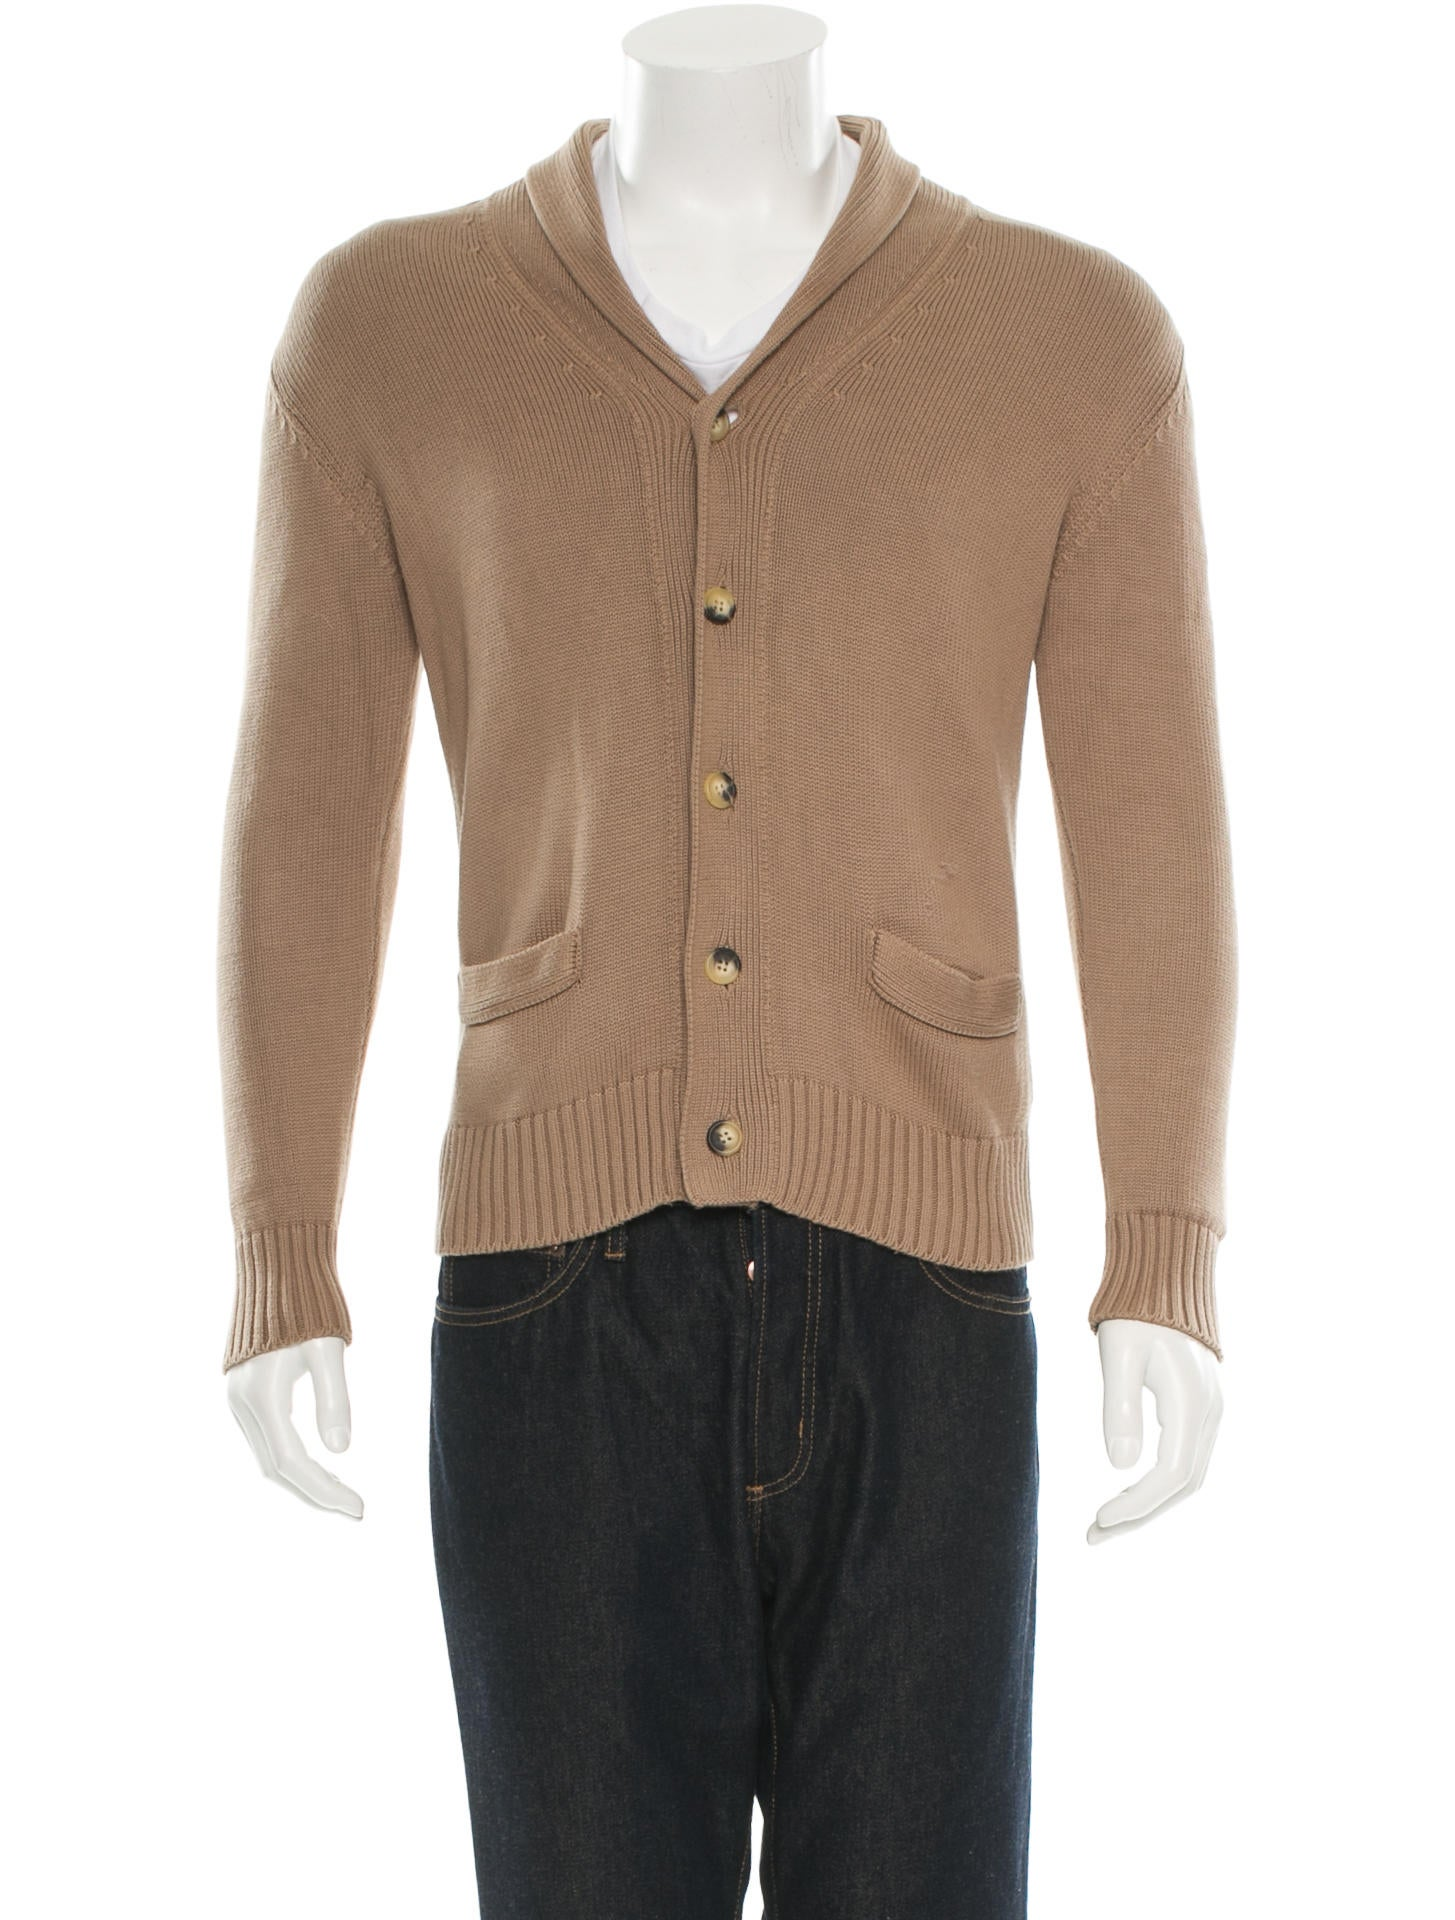 Dunhill clothes online